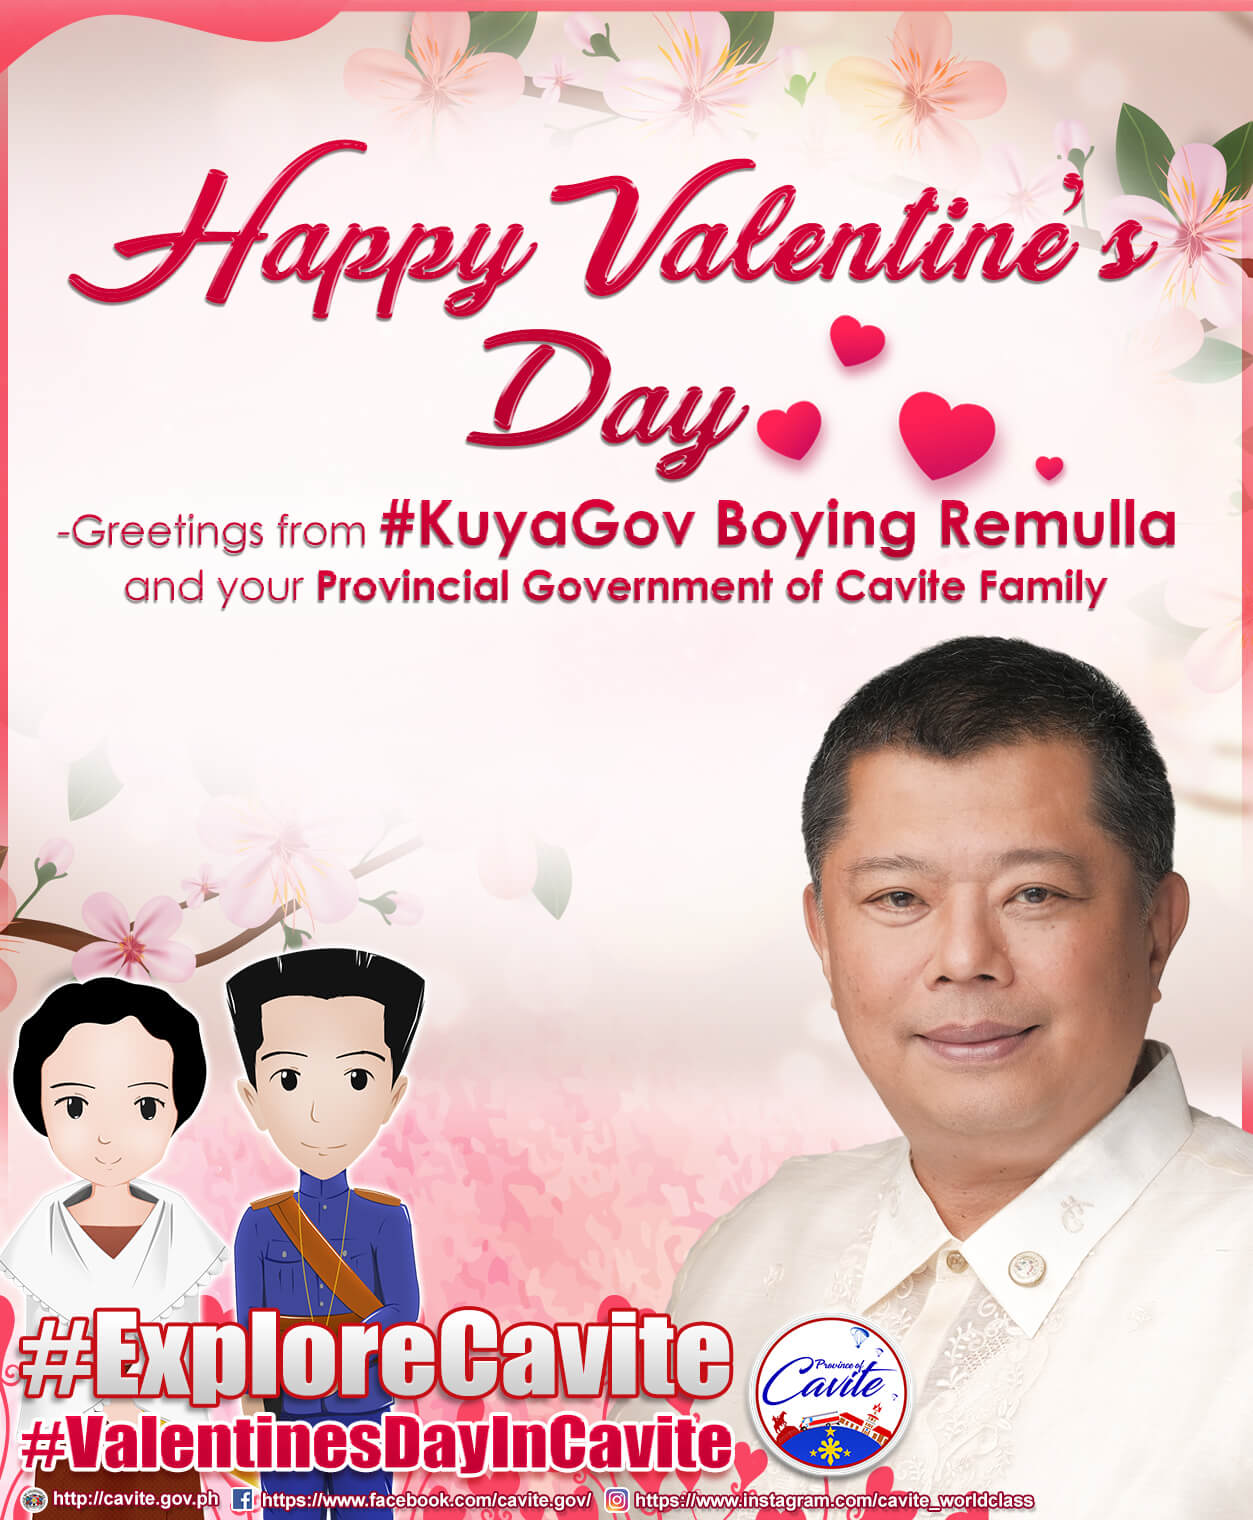 Explore Cavite – Happy Valentine's Day